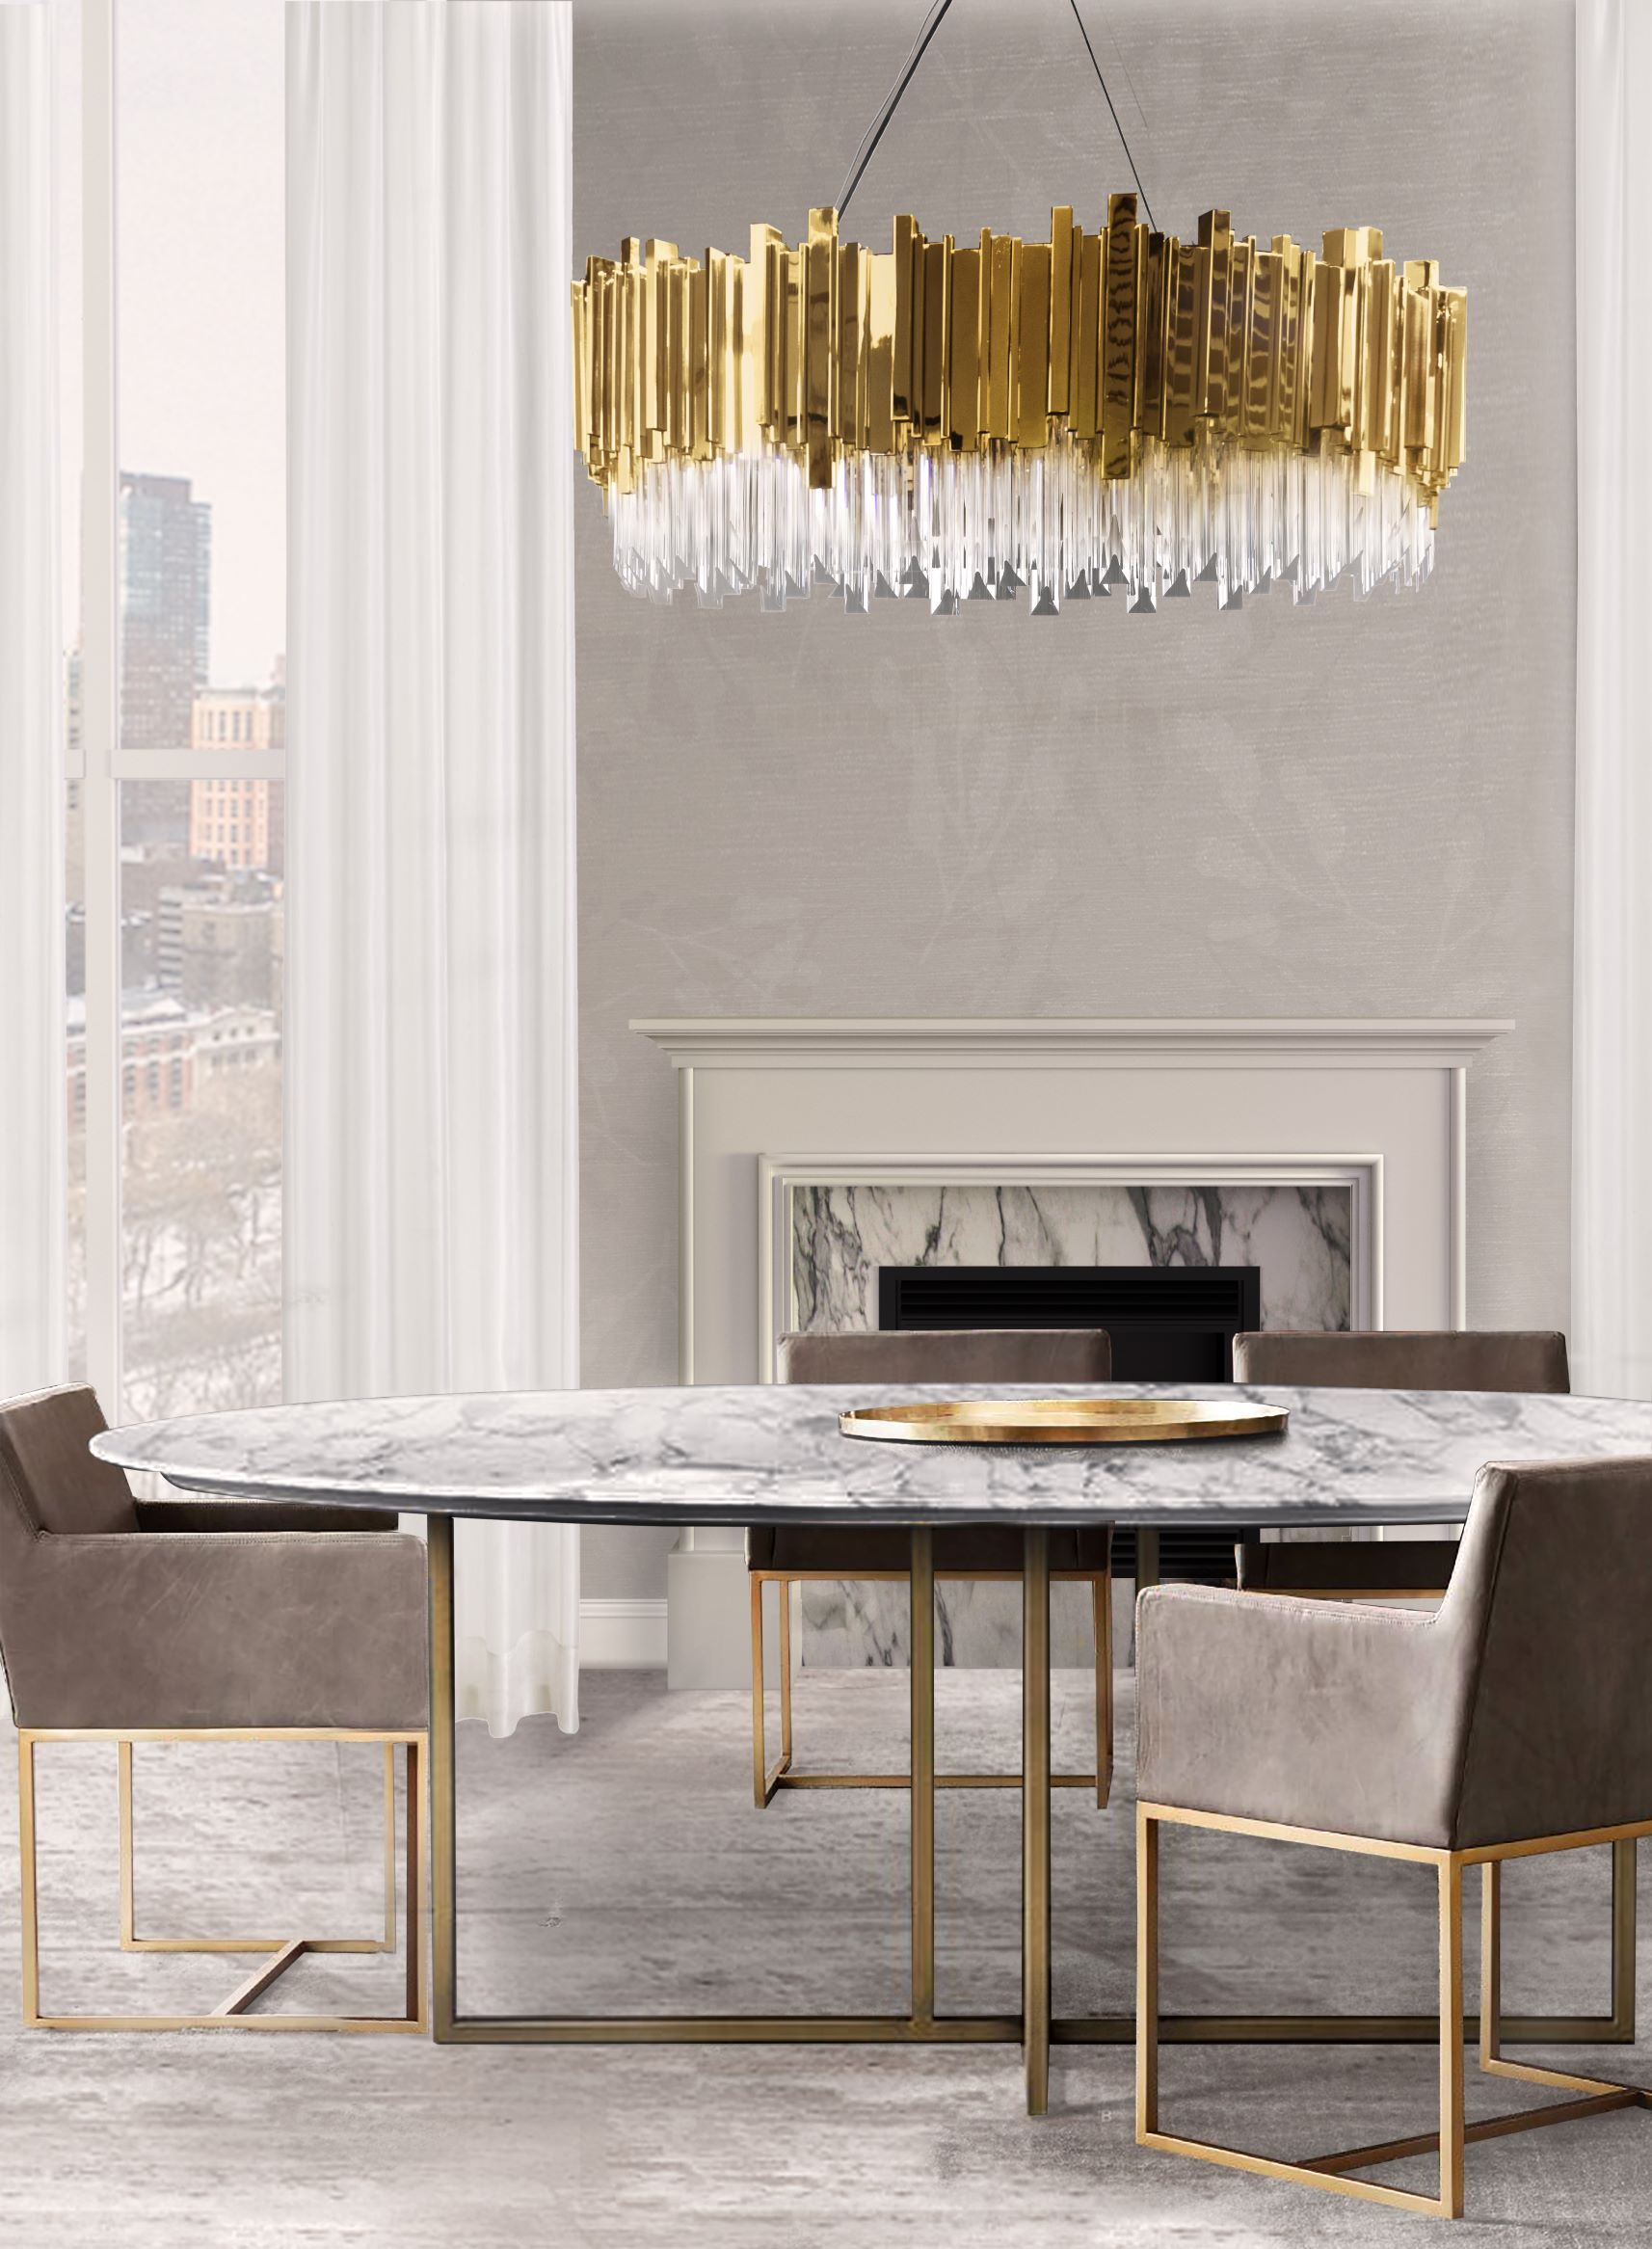 Dining Room Trends: Naturalite dining room trends Dining Room Trends: Naturalite empire suspension covereeee